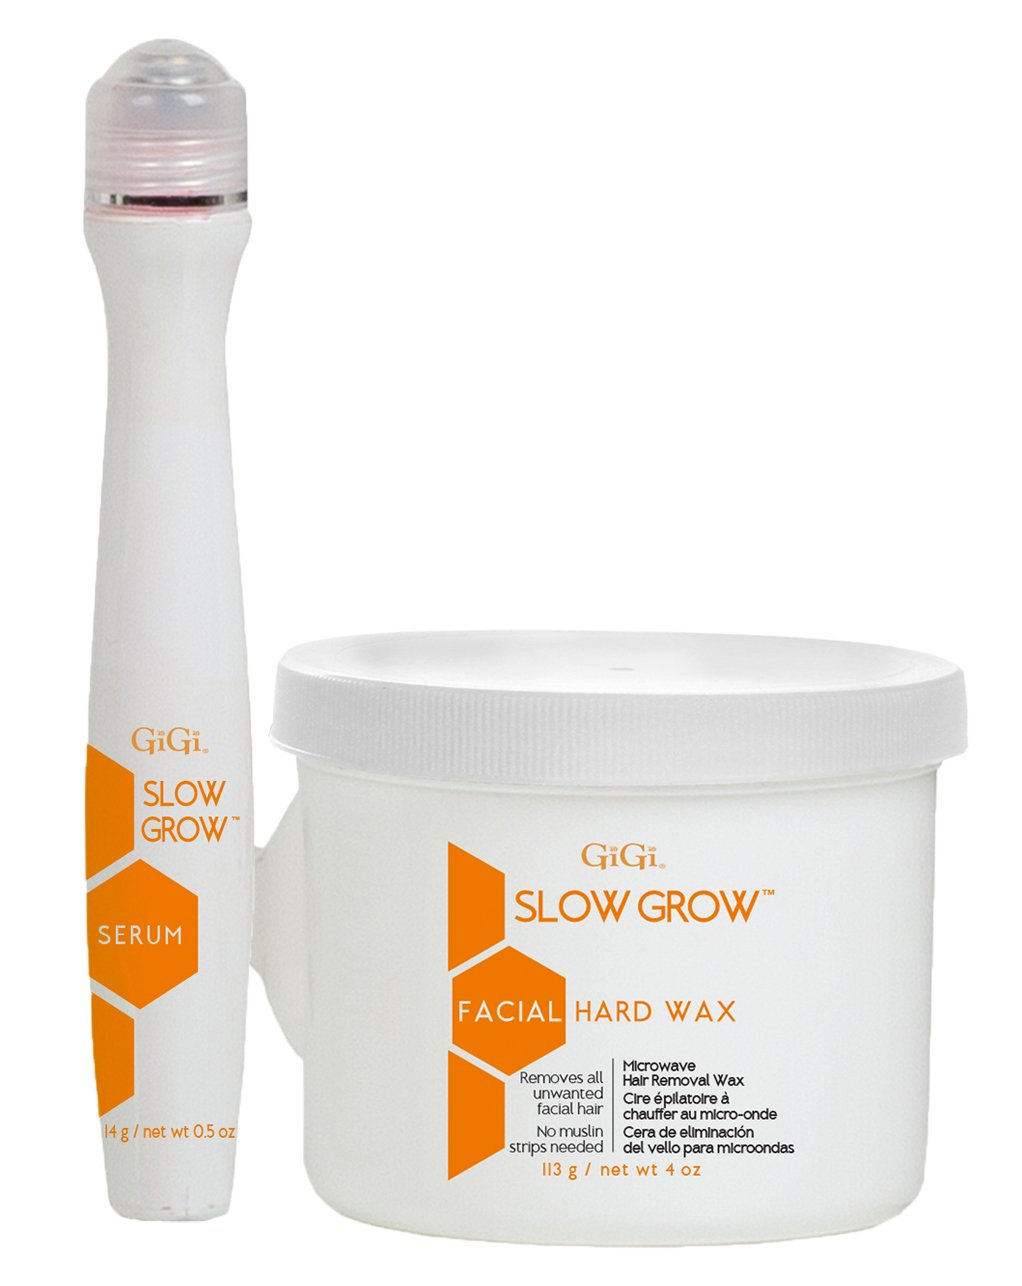 GiGi Slow Grow Facial Hair Removal 2-Step System from Fine to Coarse Hair with Papaya Extract, 4 oz